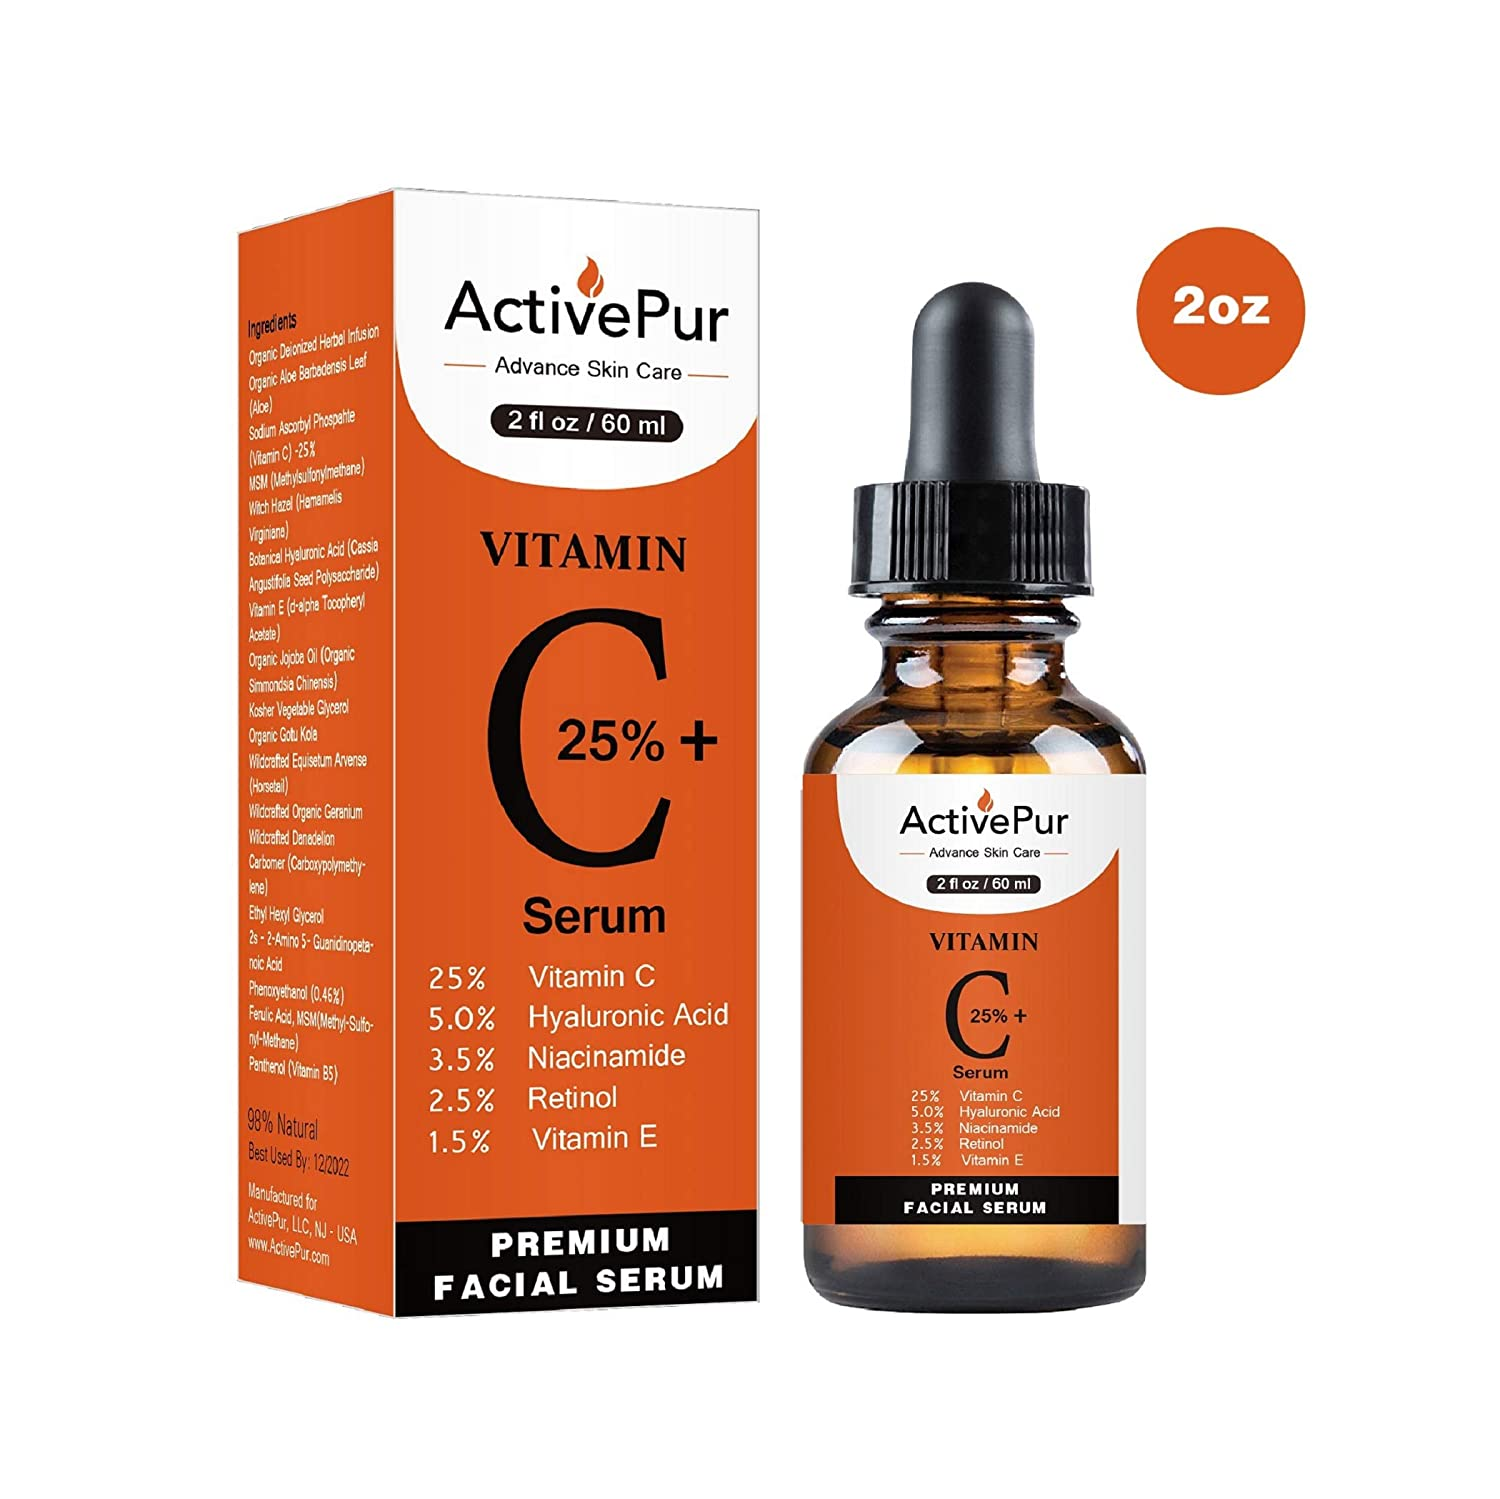 ActivePur 25% Vitamin C Serum for Face (Double Size, 2 OZ/60 ml) Vitamin E+B5, Hyaluronic Acid Serum for Face Retinol Ferulic Acid Niacinamide Anti Aging Wrinkle Age Spots Eye circles Skin Moisturizer